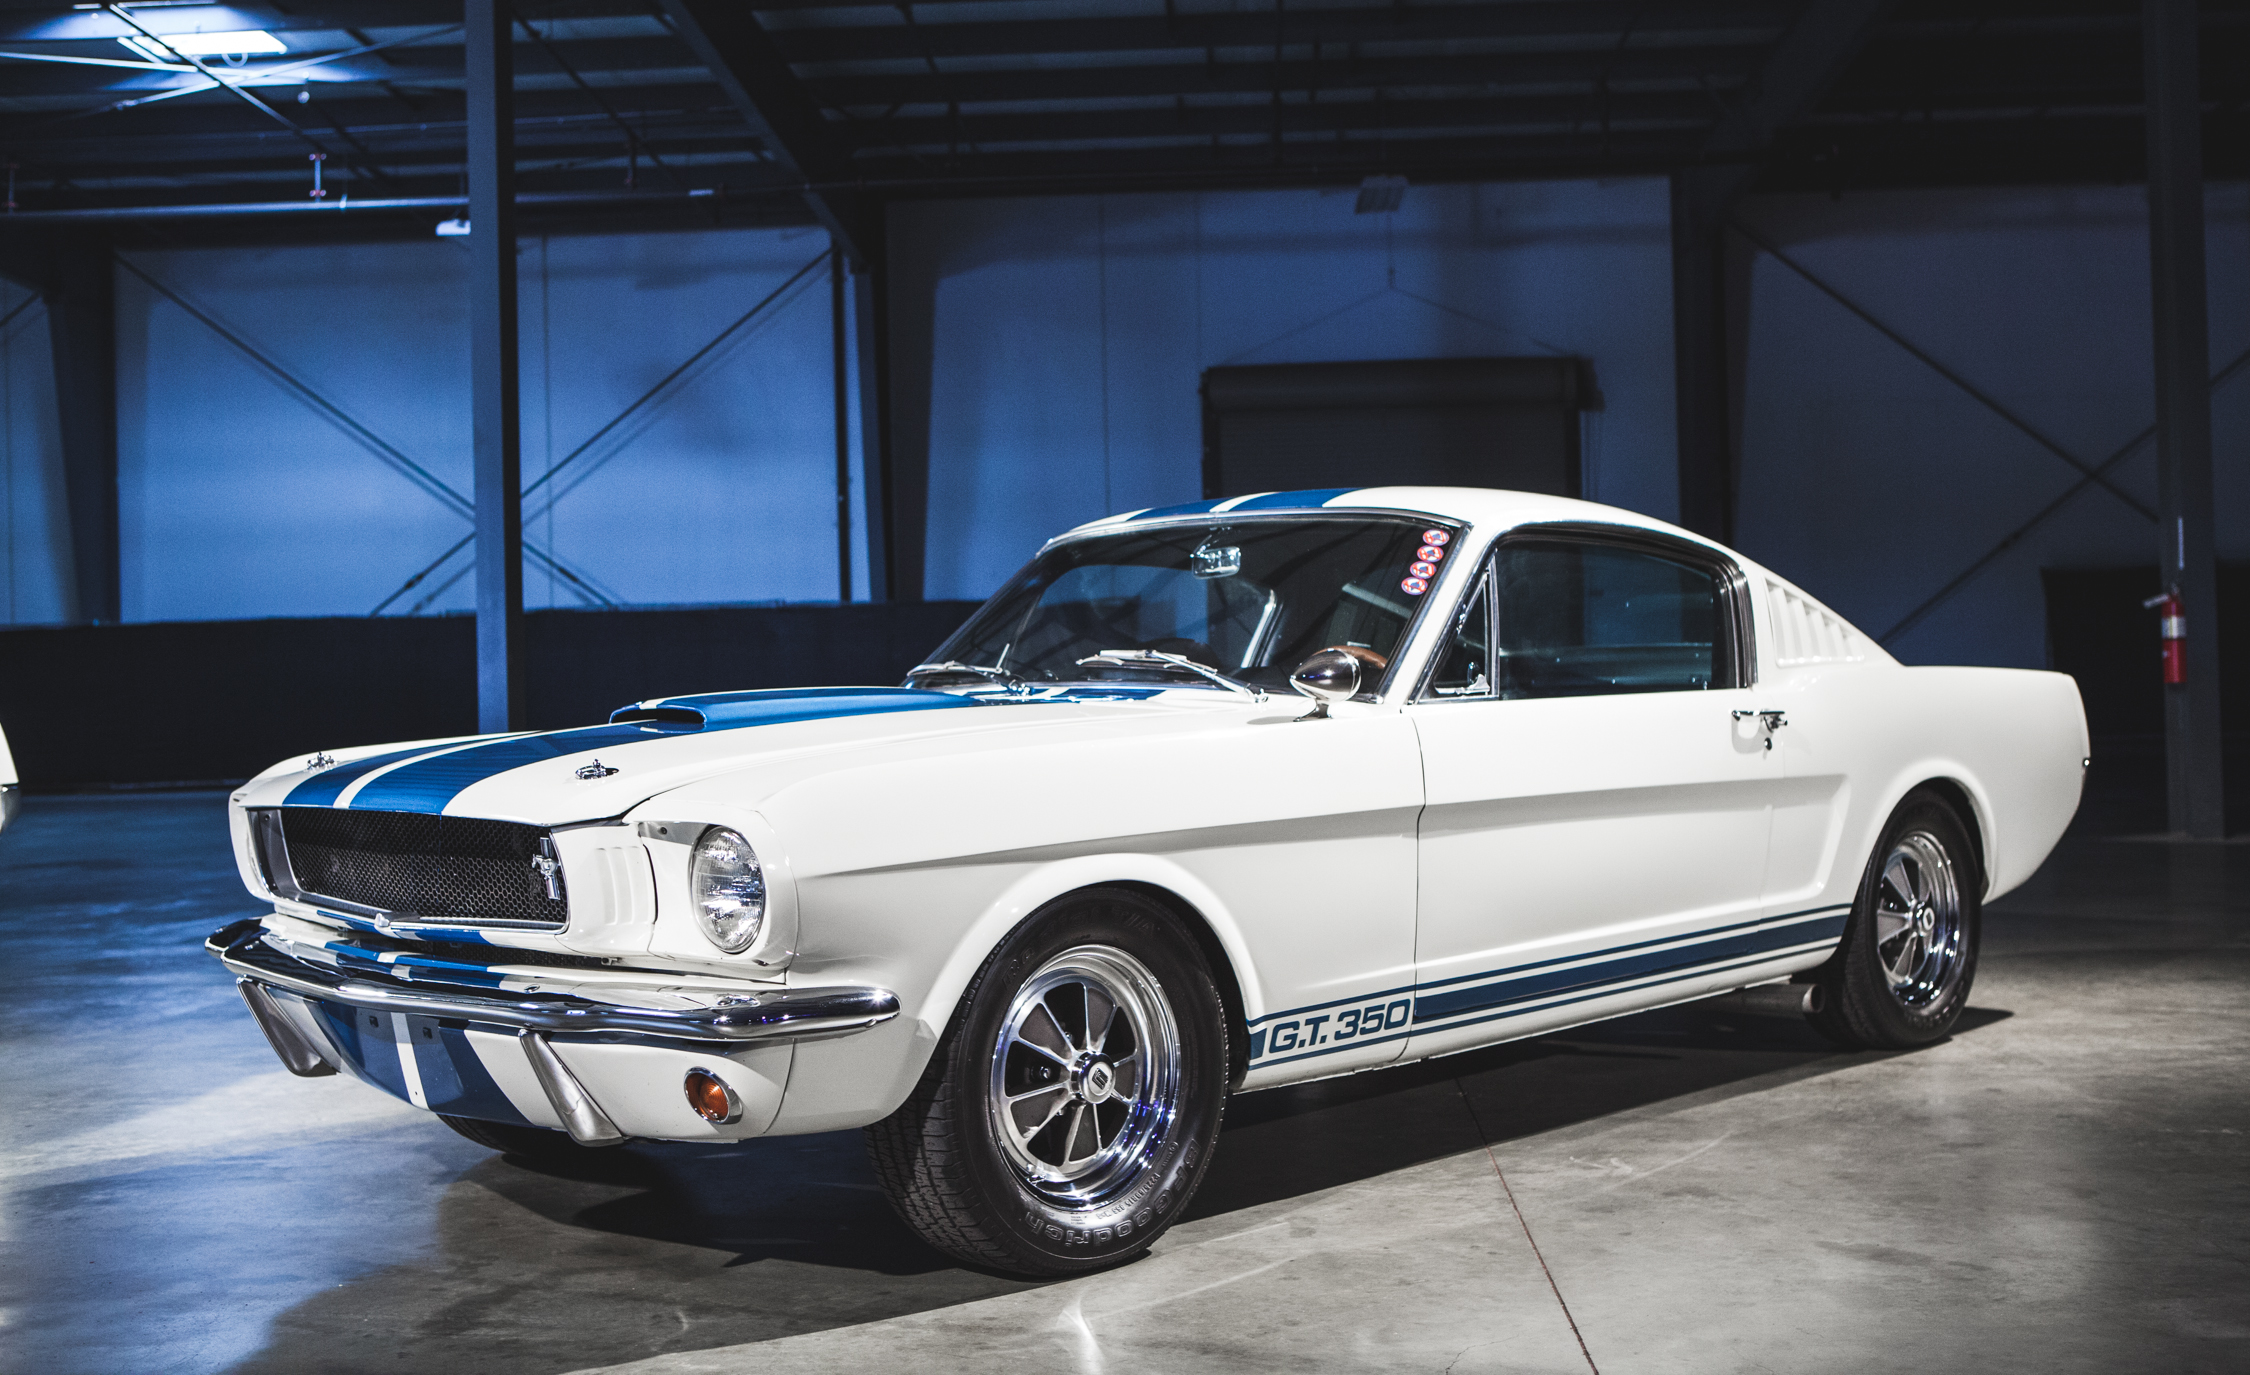 Shelby Mustang Gt350 Images Shelby Mustang Gt350 Hd